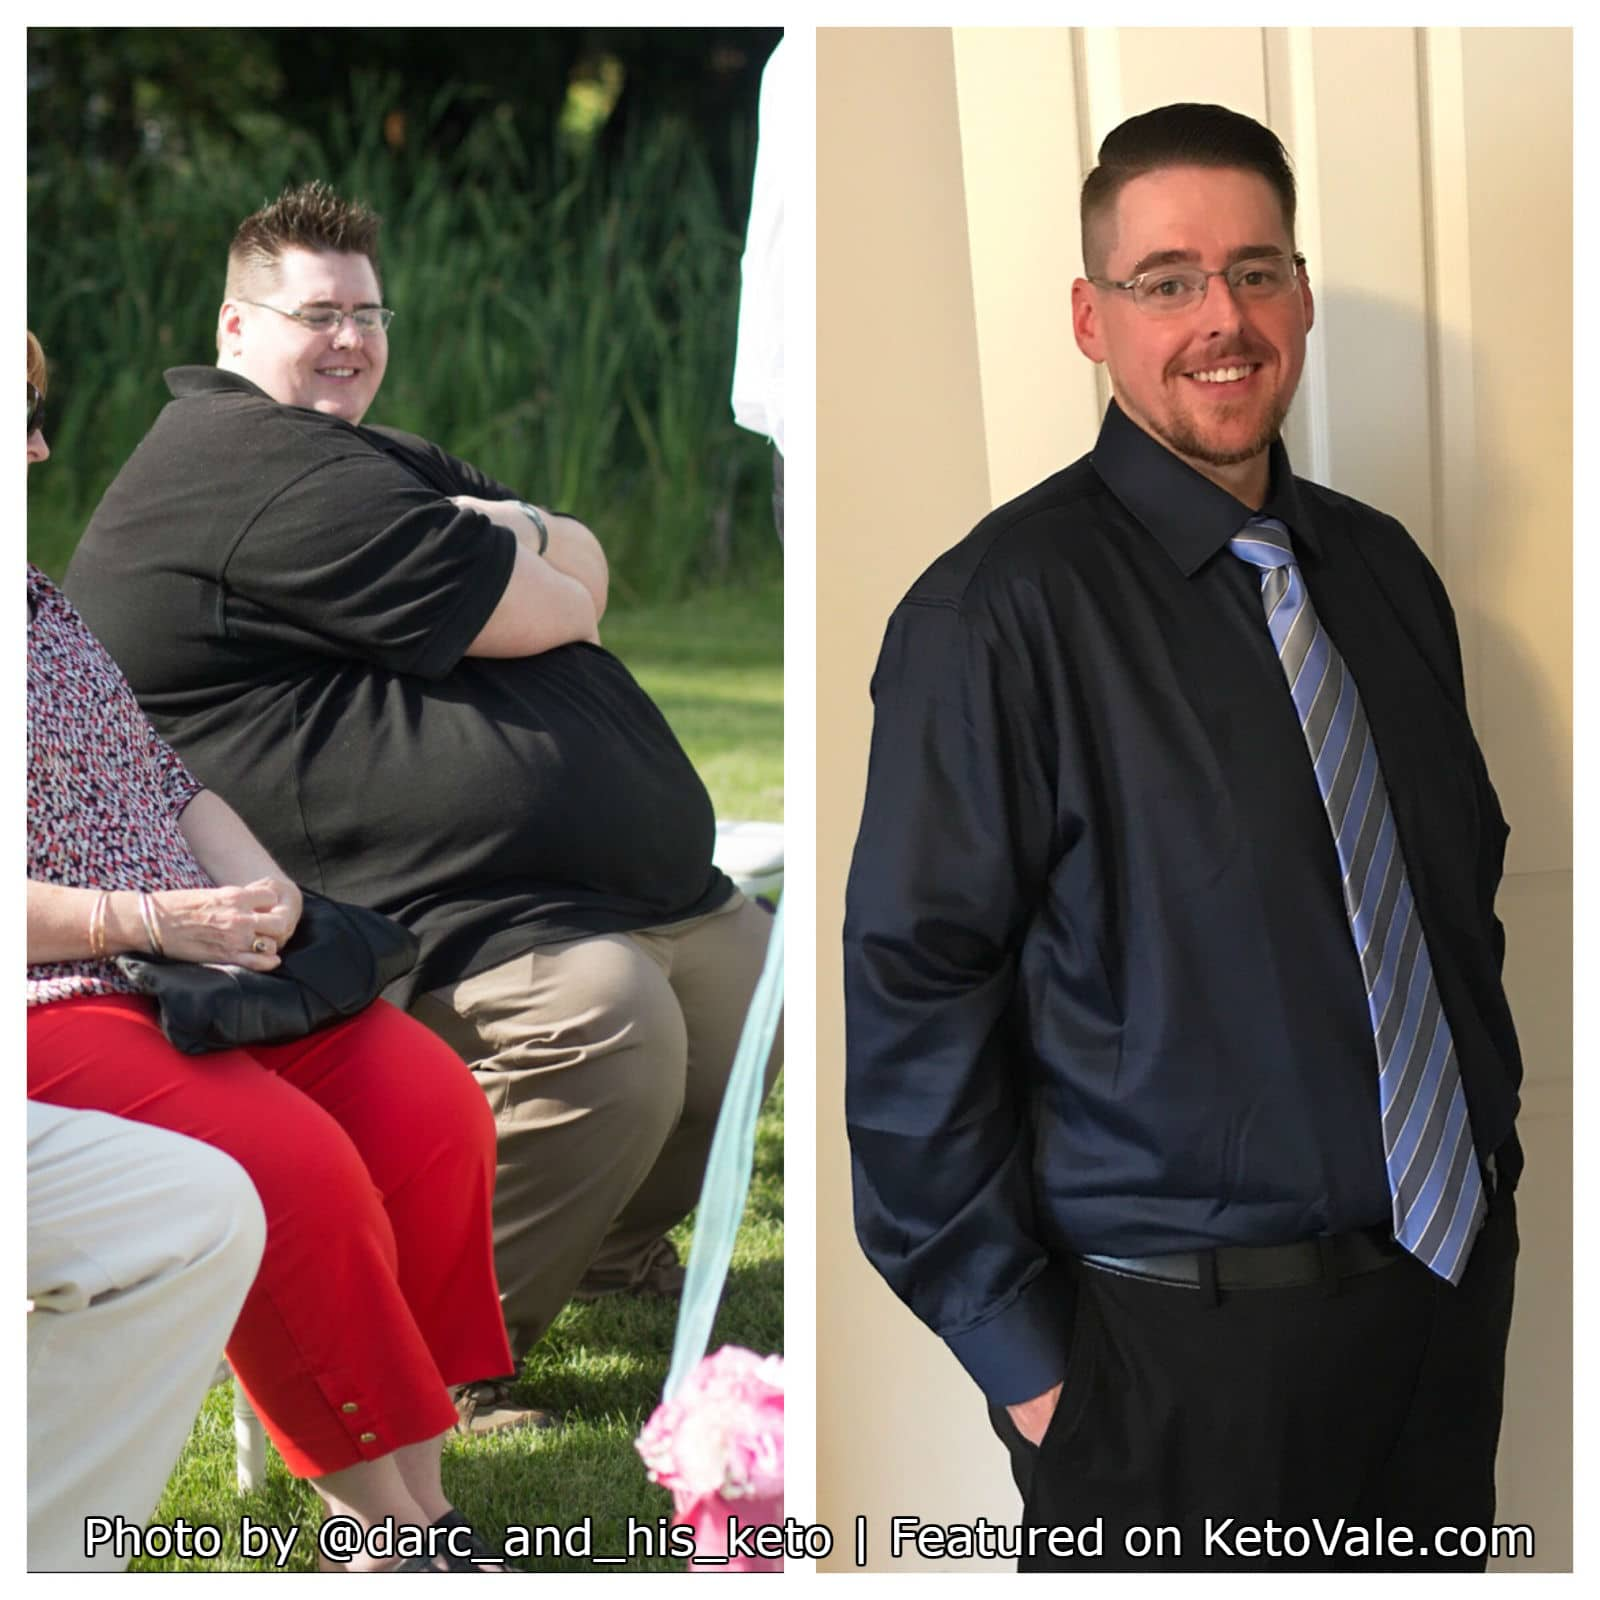 Kyle Matheson's 240Lbs Weight Loss Keto Success Story